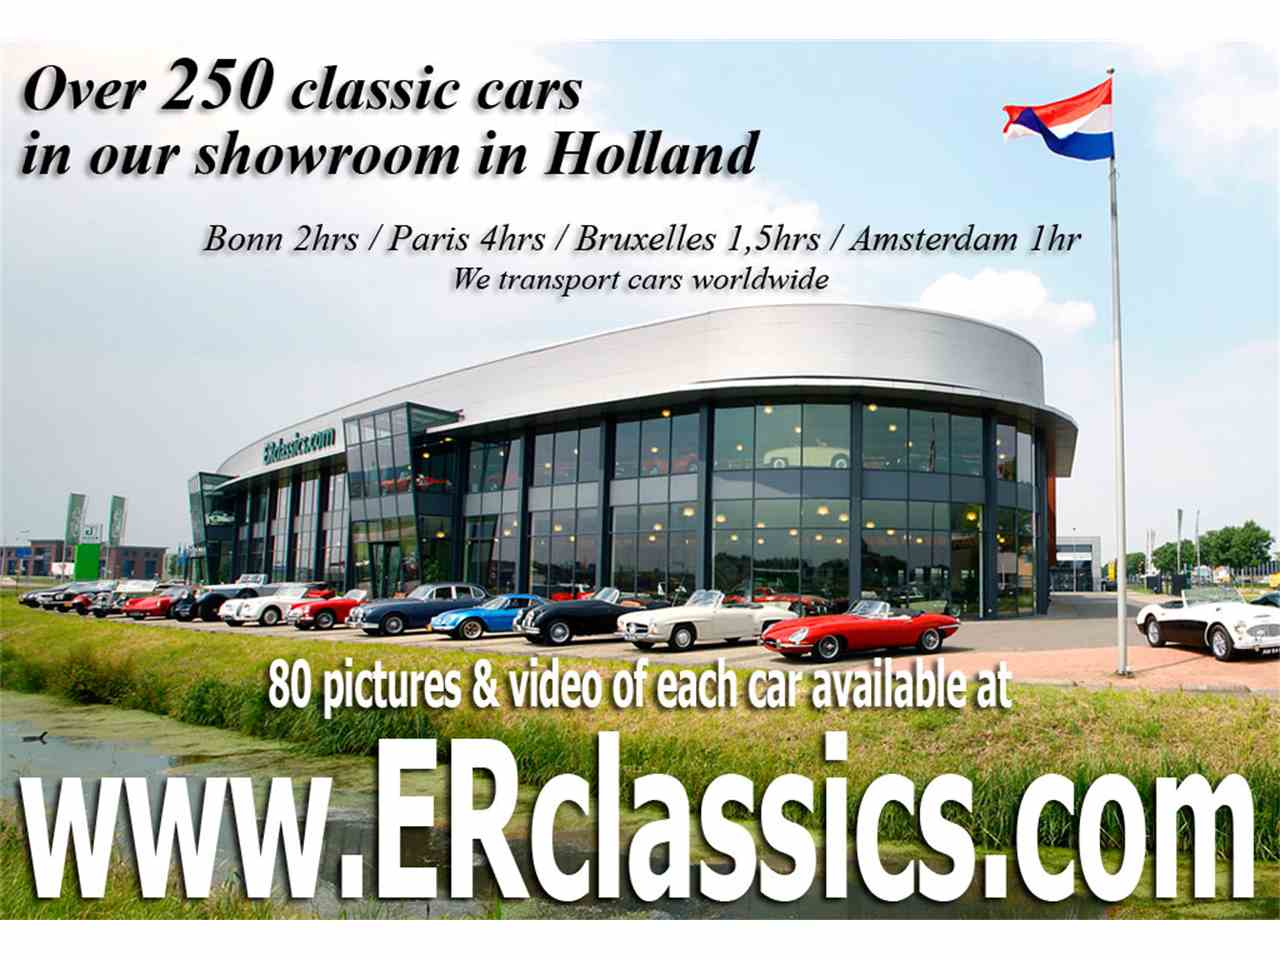 Large Picture of '89 Ferrari 328 GTS located in Waalwijk Noord Brabant - MA9J